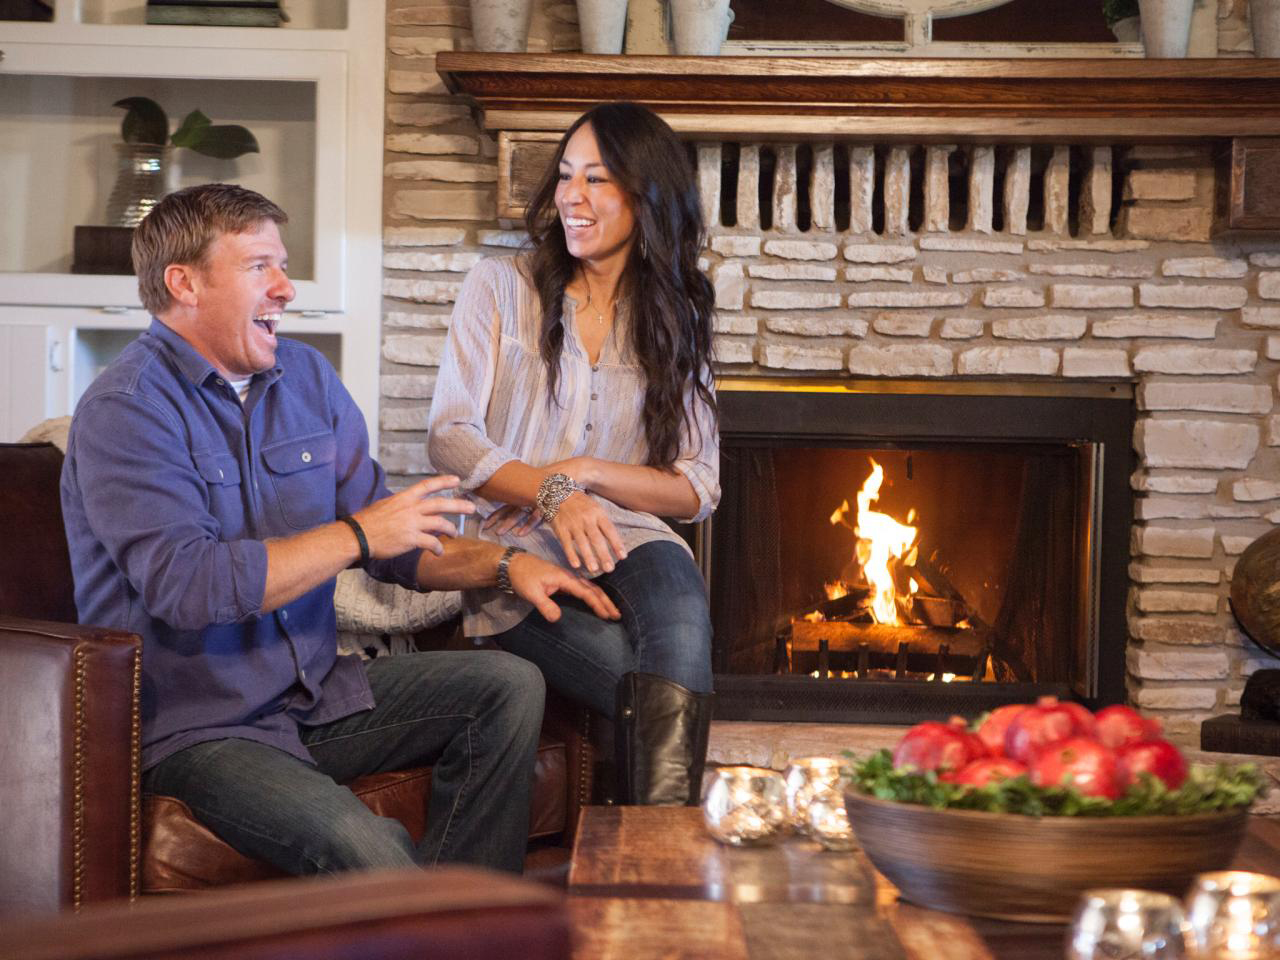 fun facts about chip and joanna gaines hgtv 39 s fixer upper stars. Black Bedroom Furniture Sets. Home Design Ideas